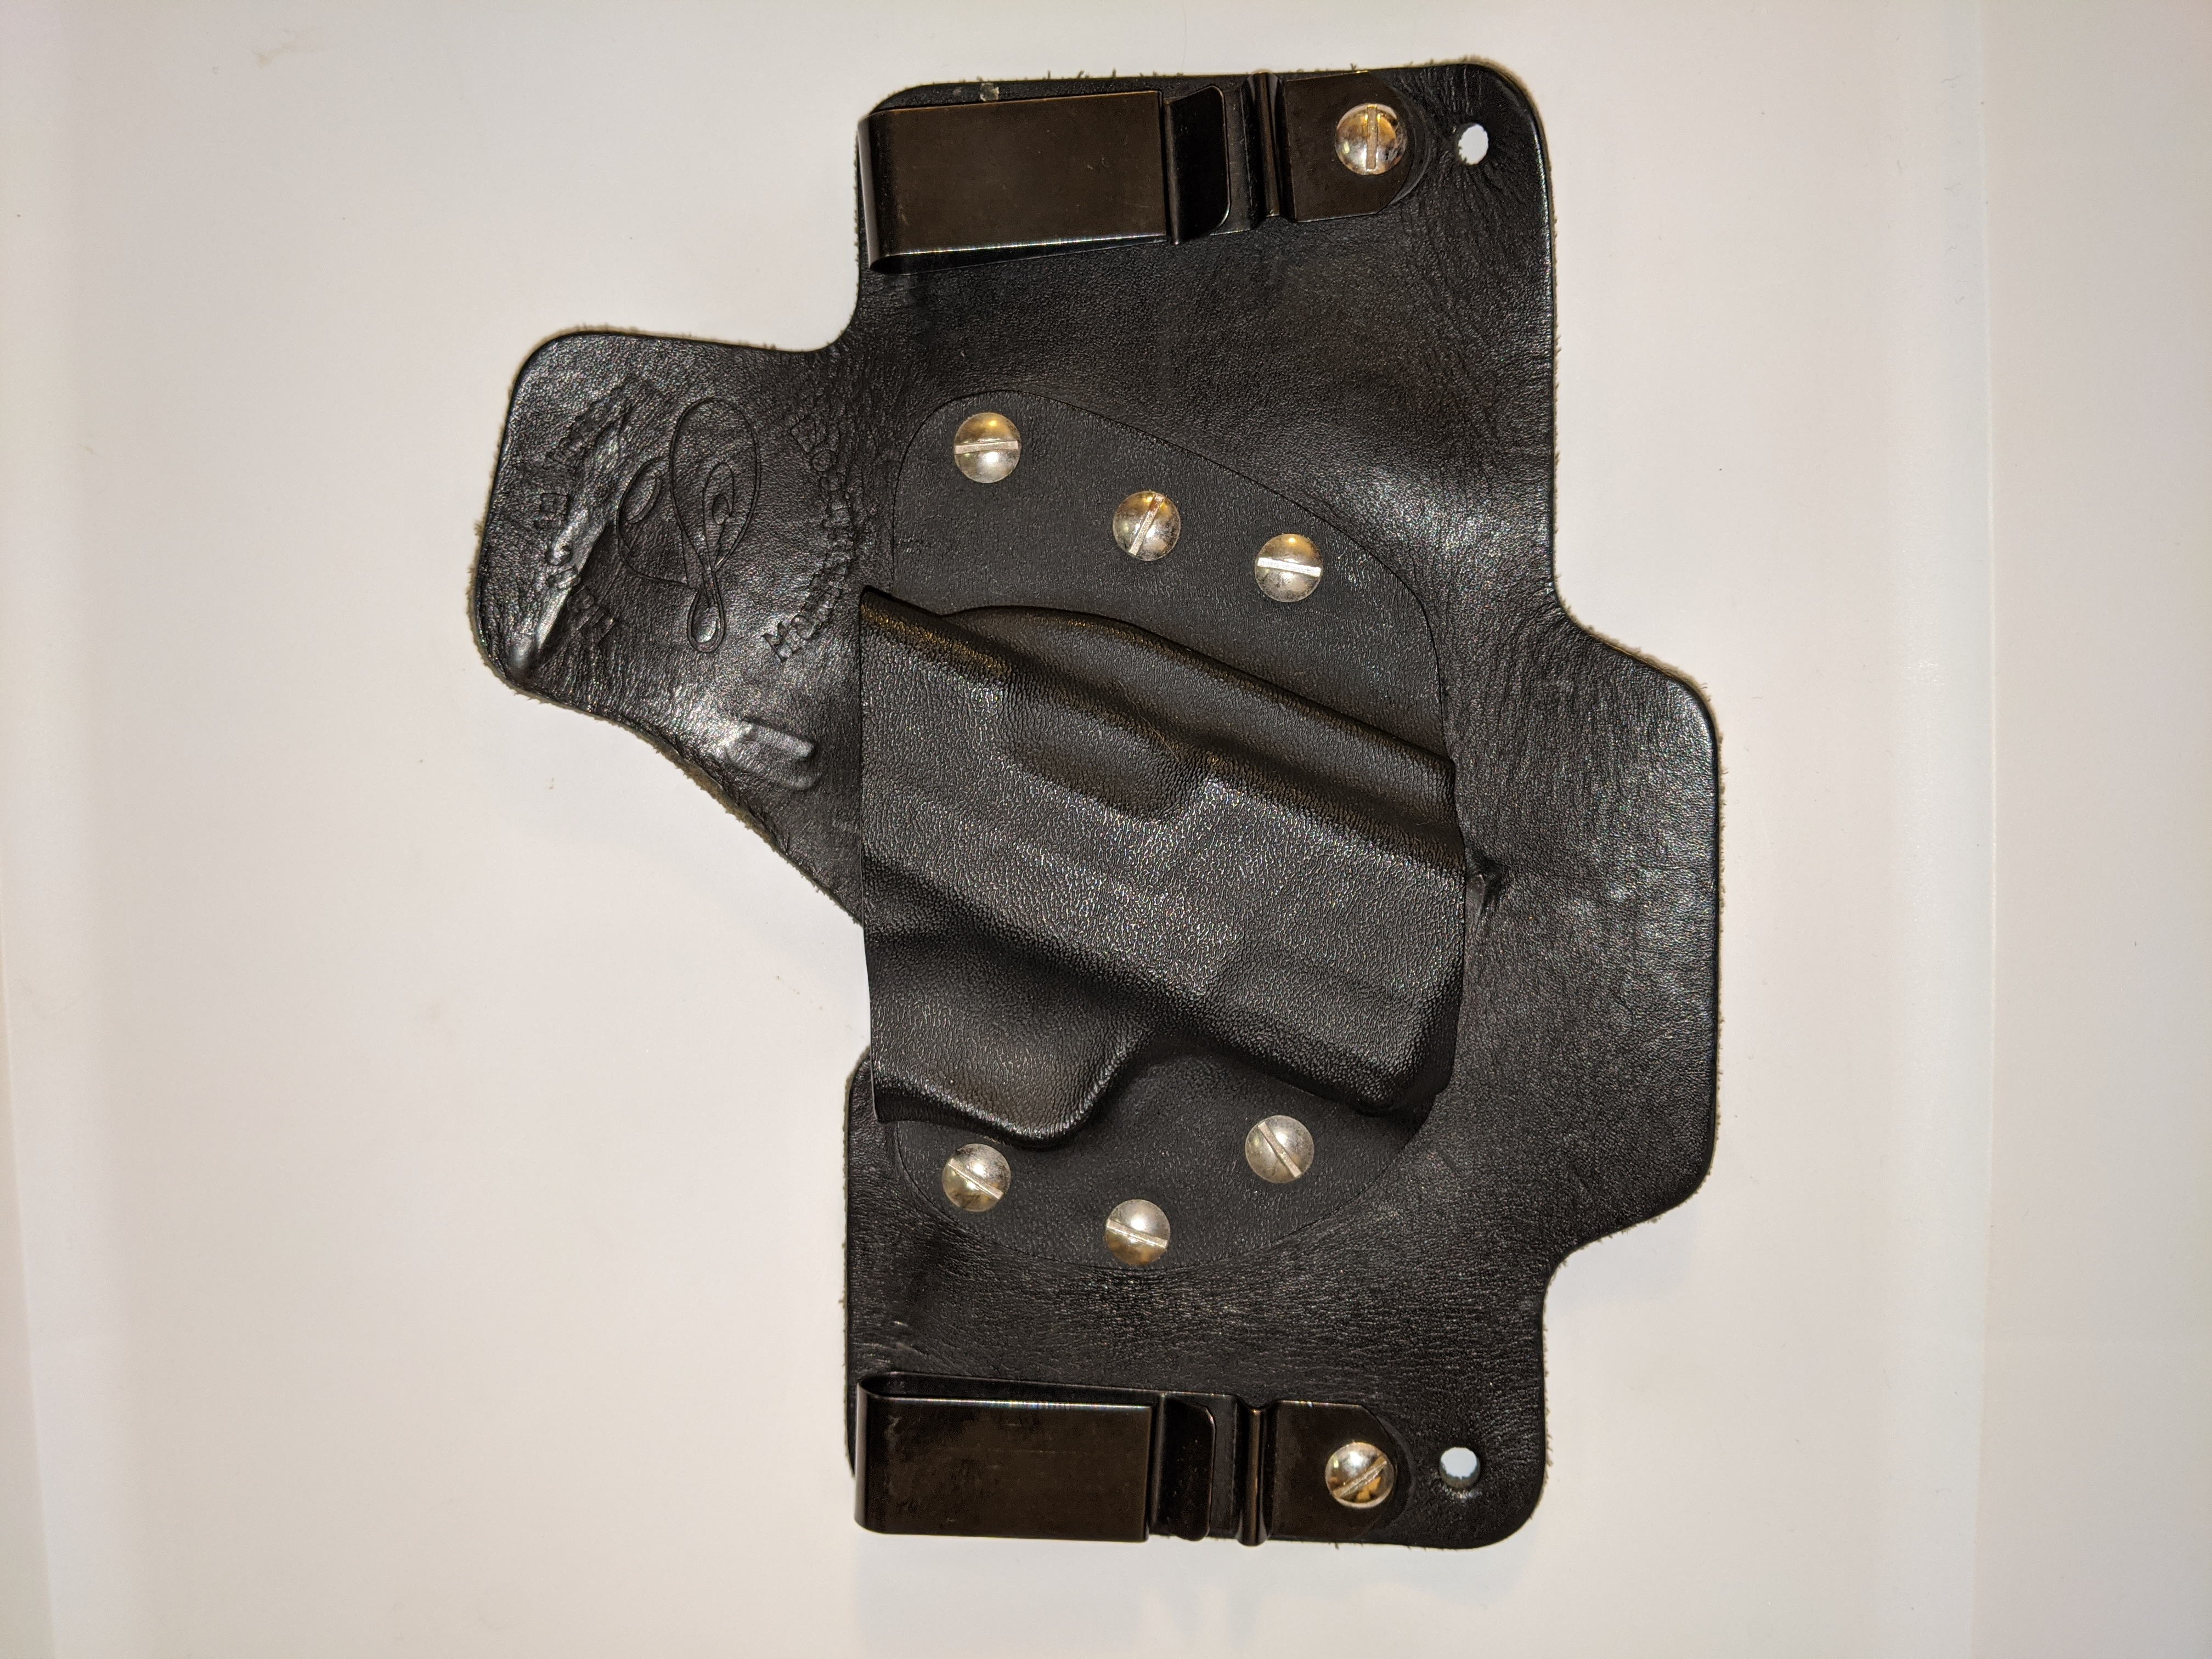 WTS - Holsters for Shield & XD-S .45-img_20200328_110858.jpg